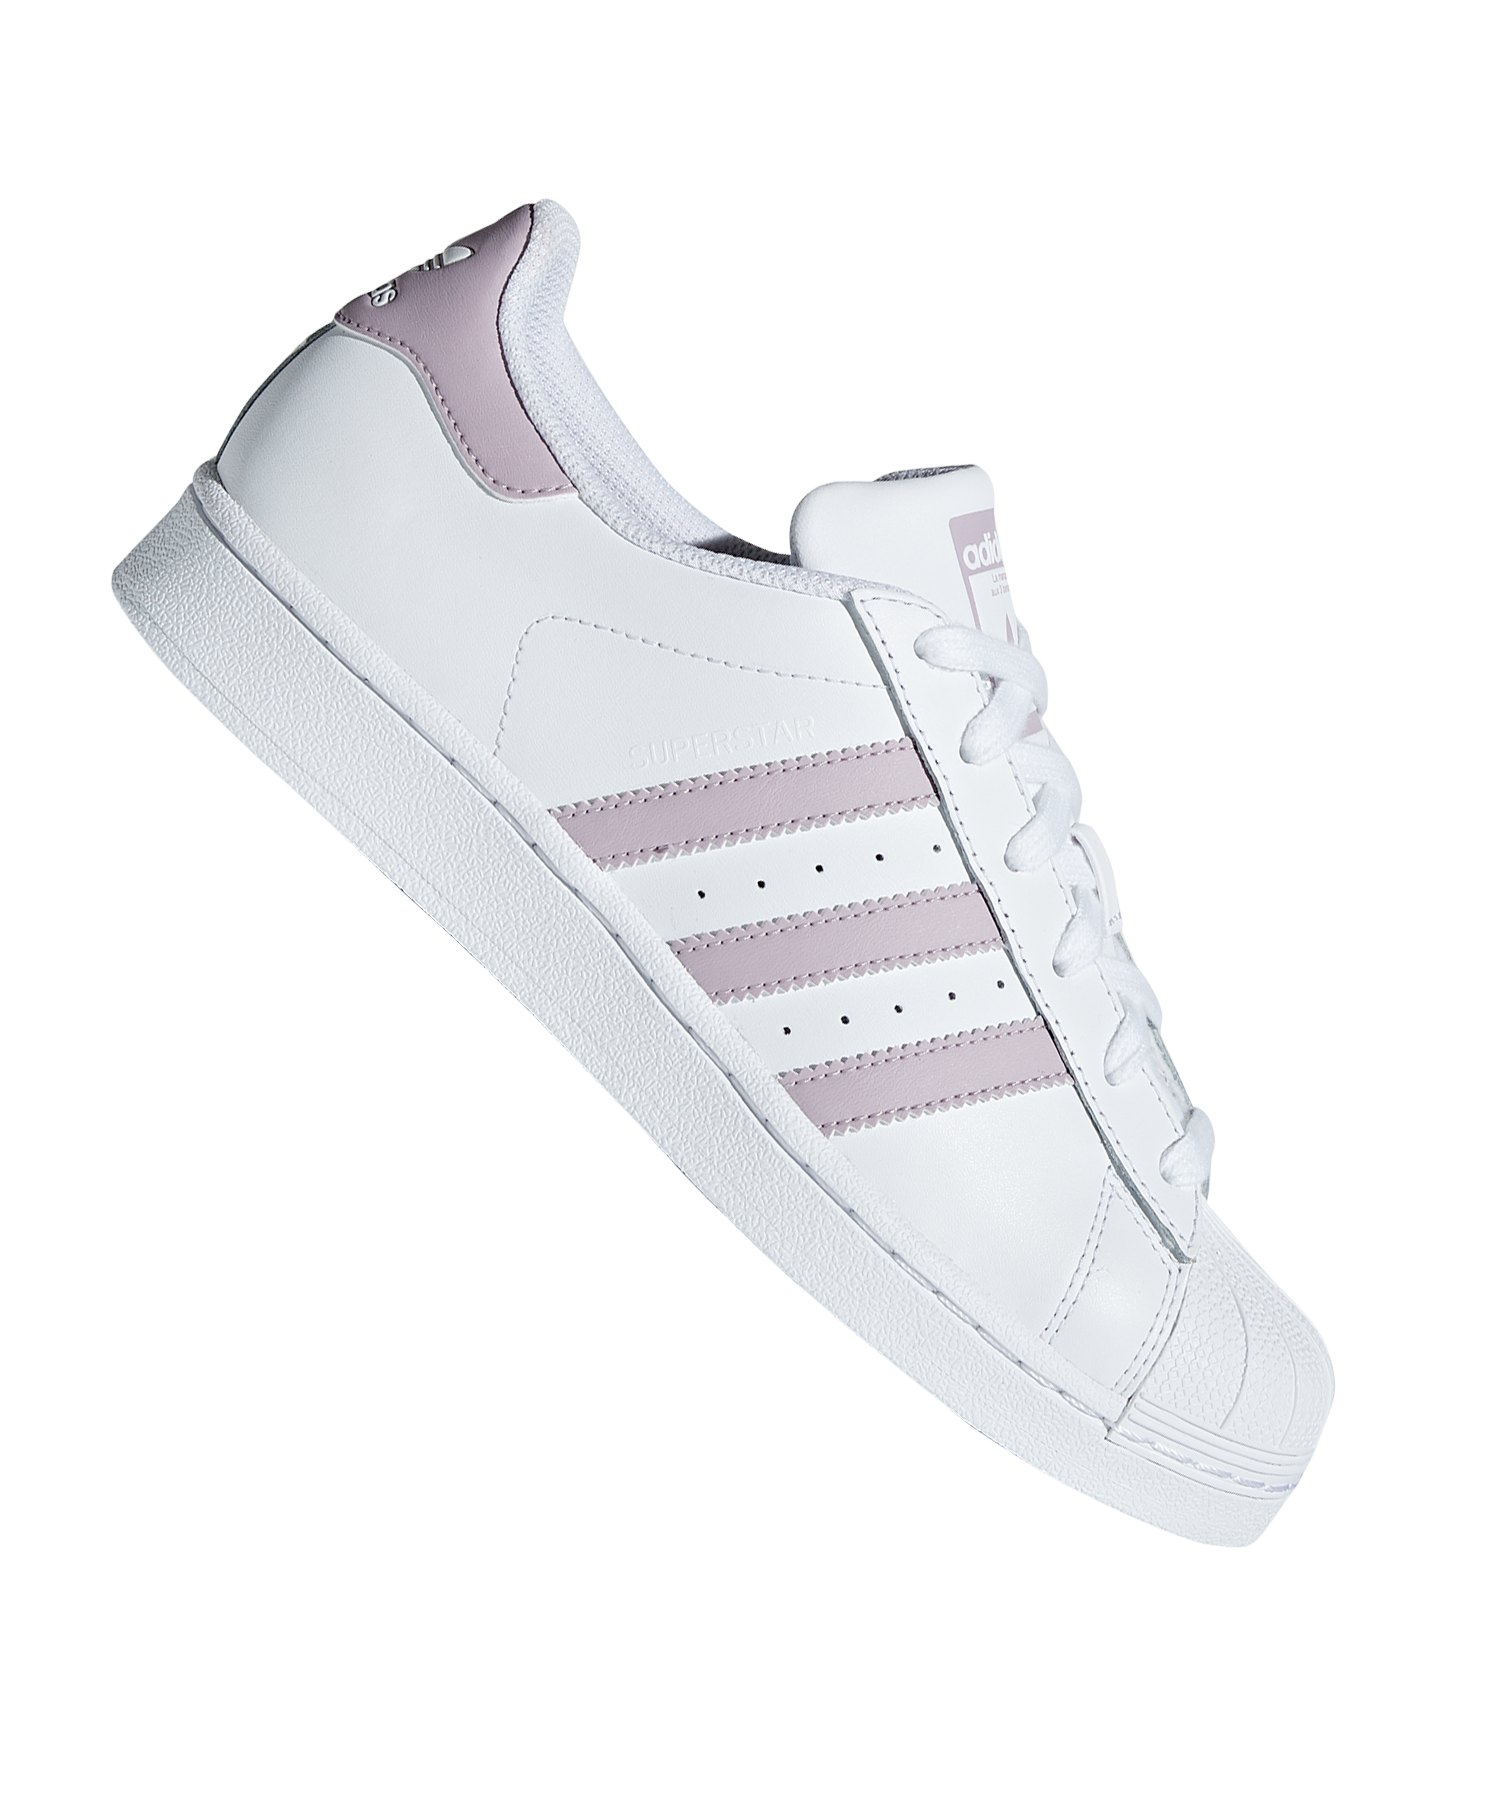 adidas Originals Superstar Sneaker Damen Weiss